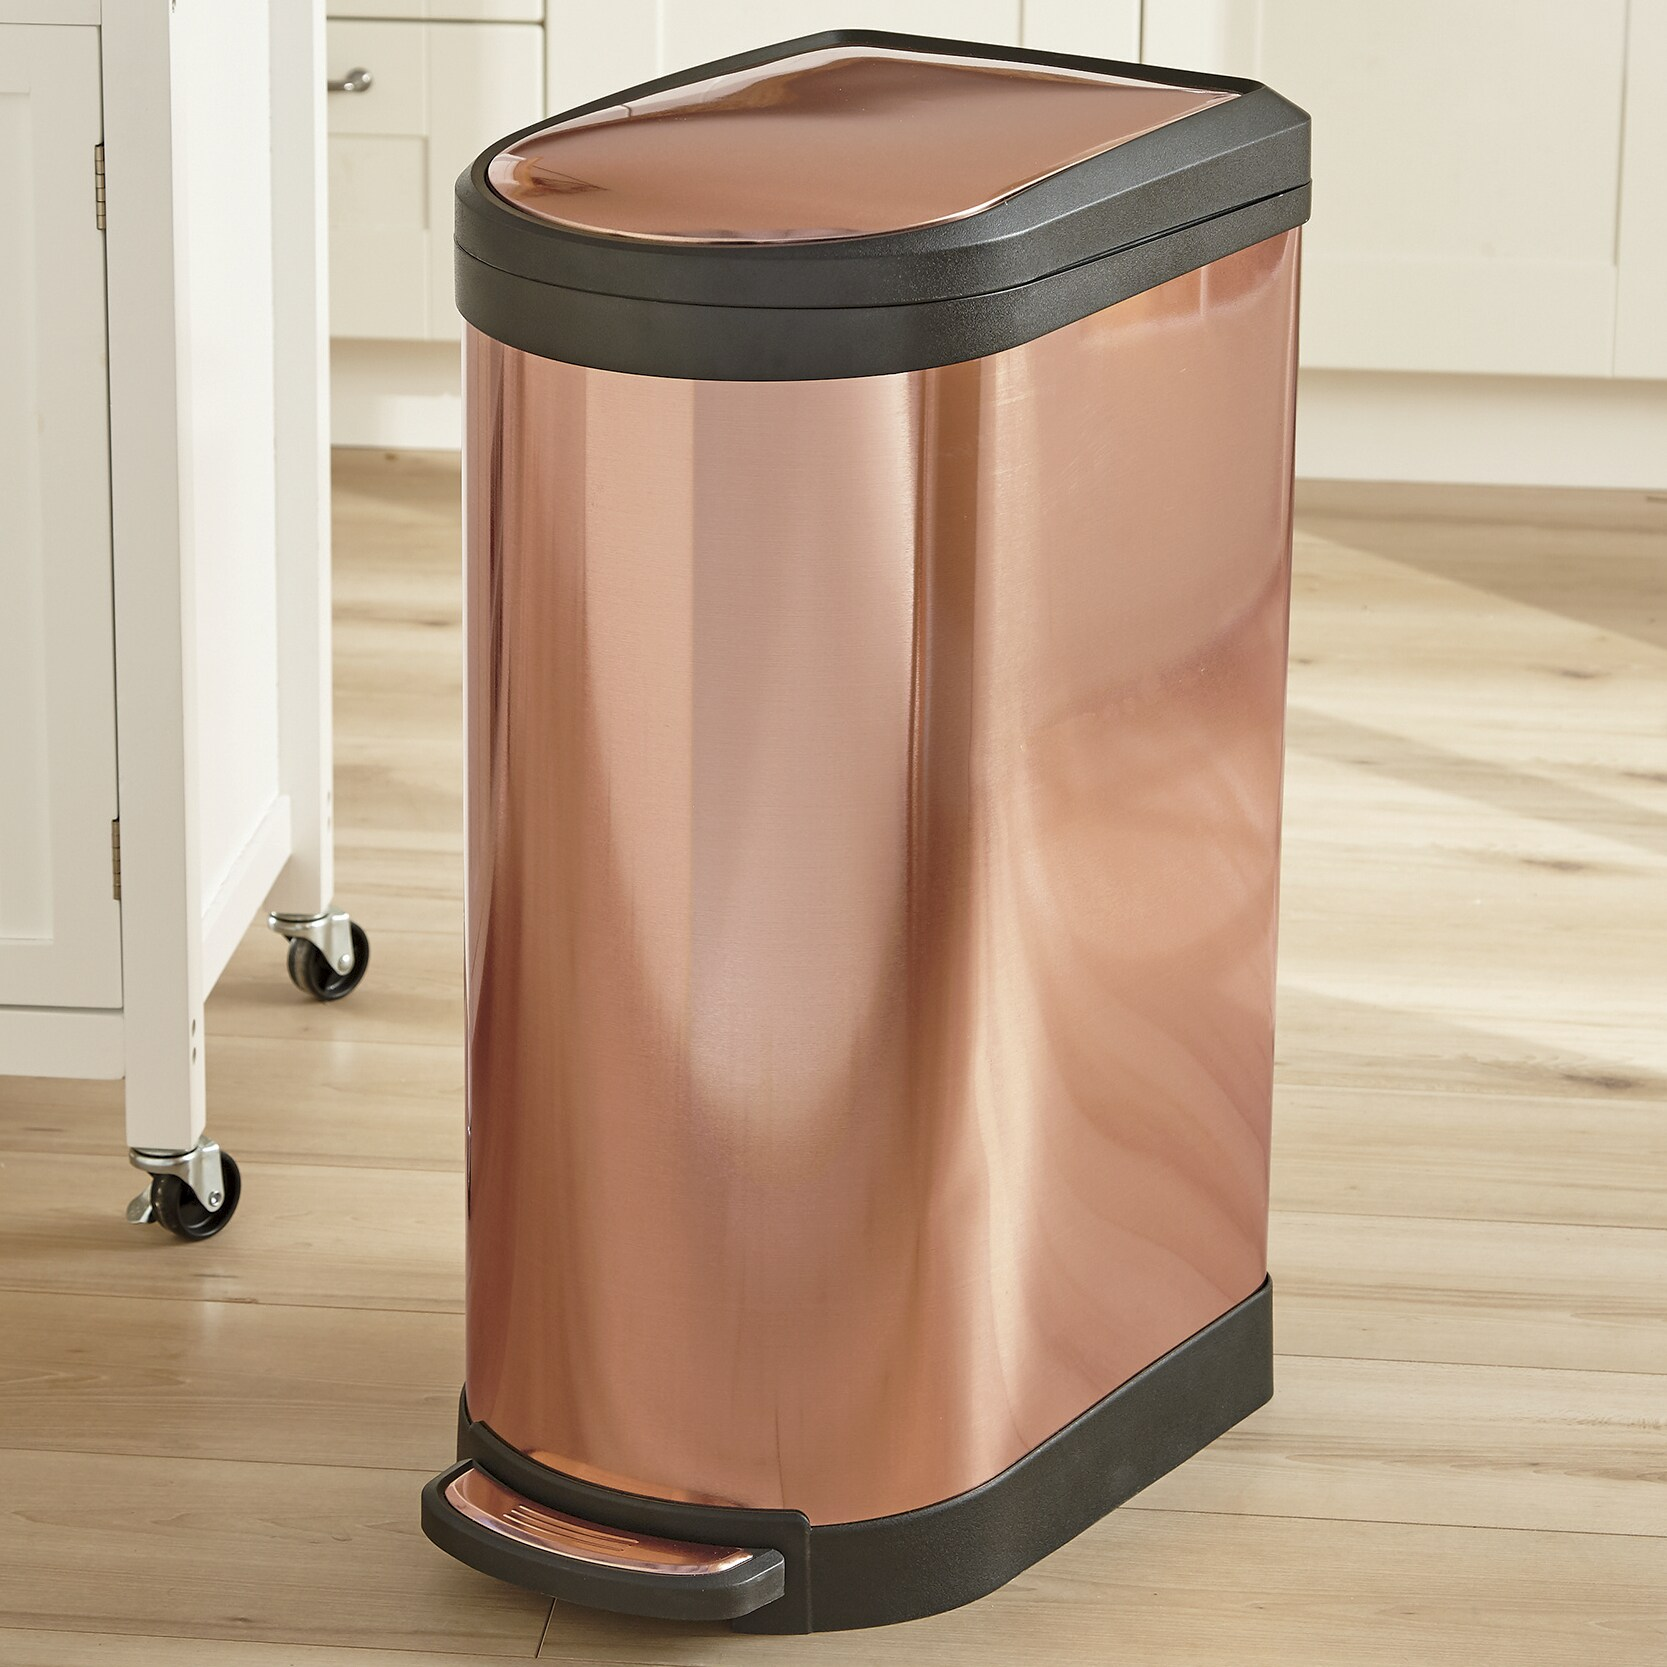 Copper Trash Can With Lid 10 5 Gallon Fingerprint Proof Trash Can Seventh Avenue